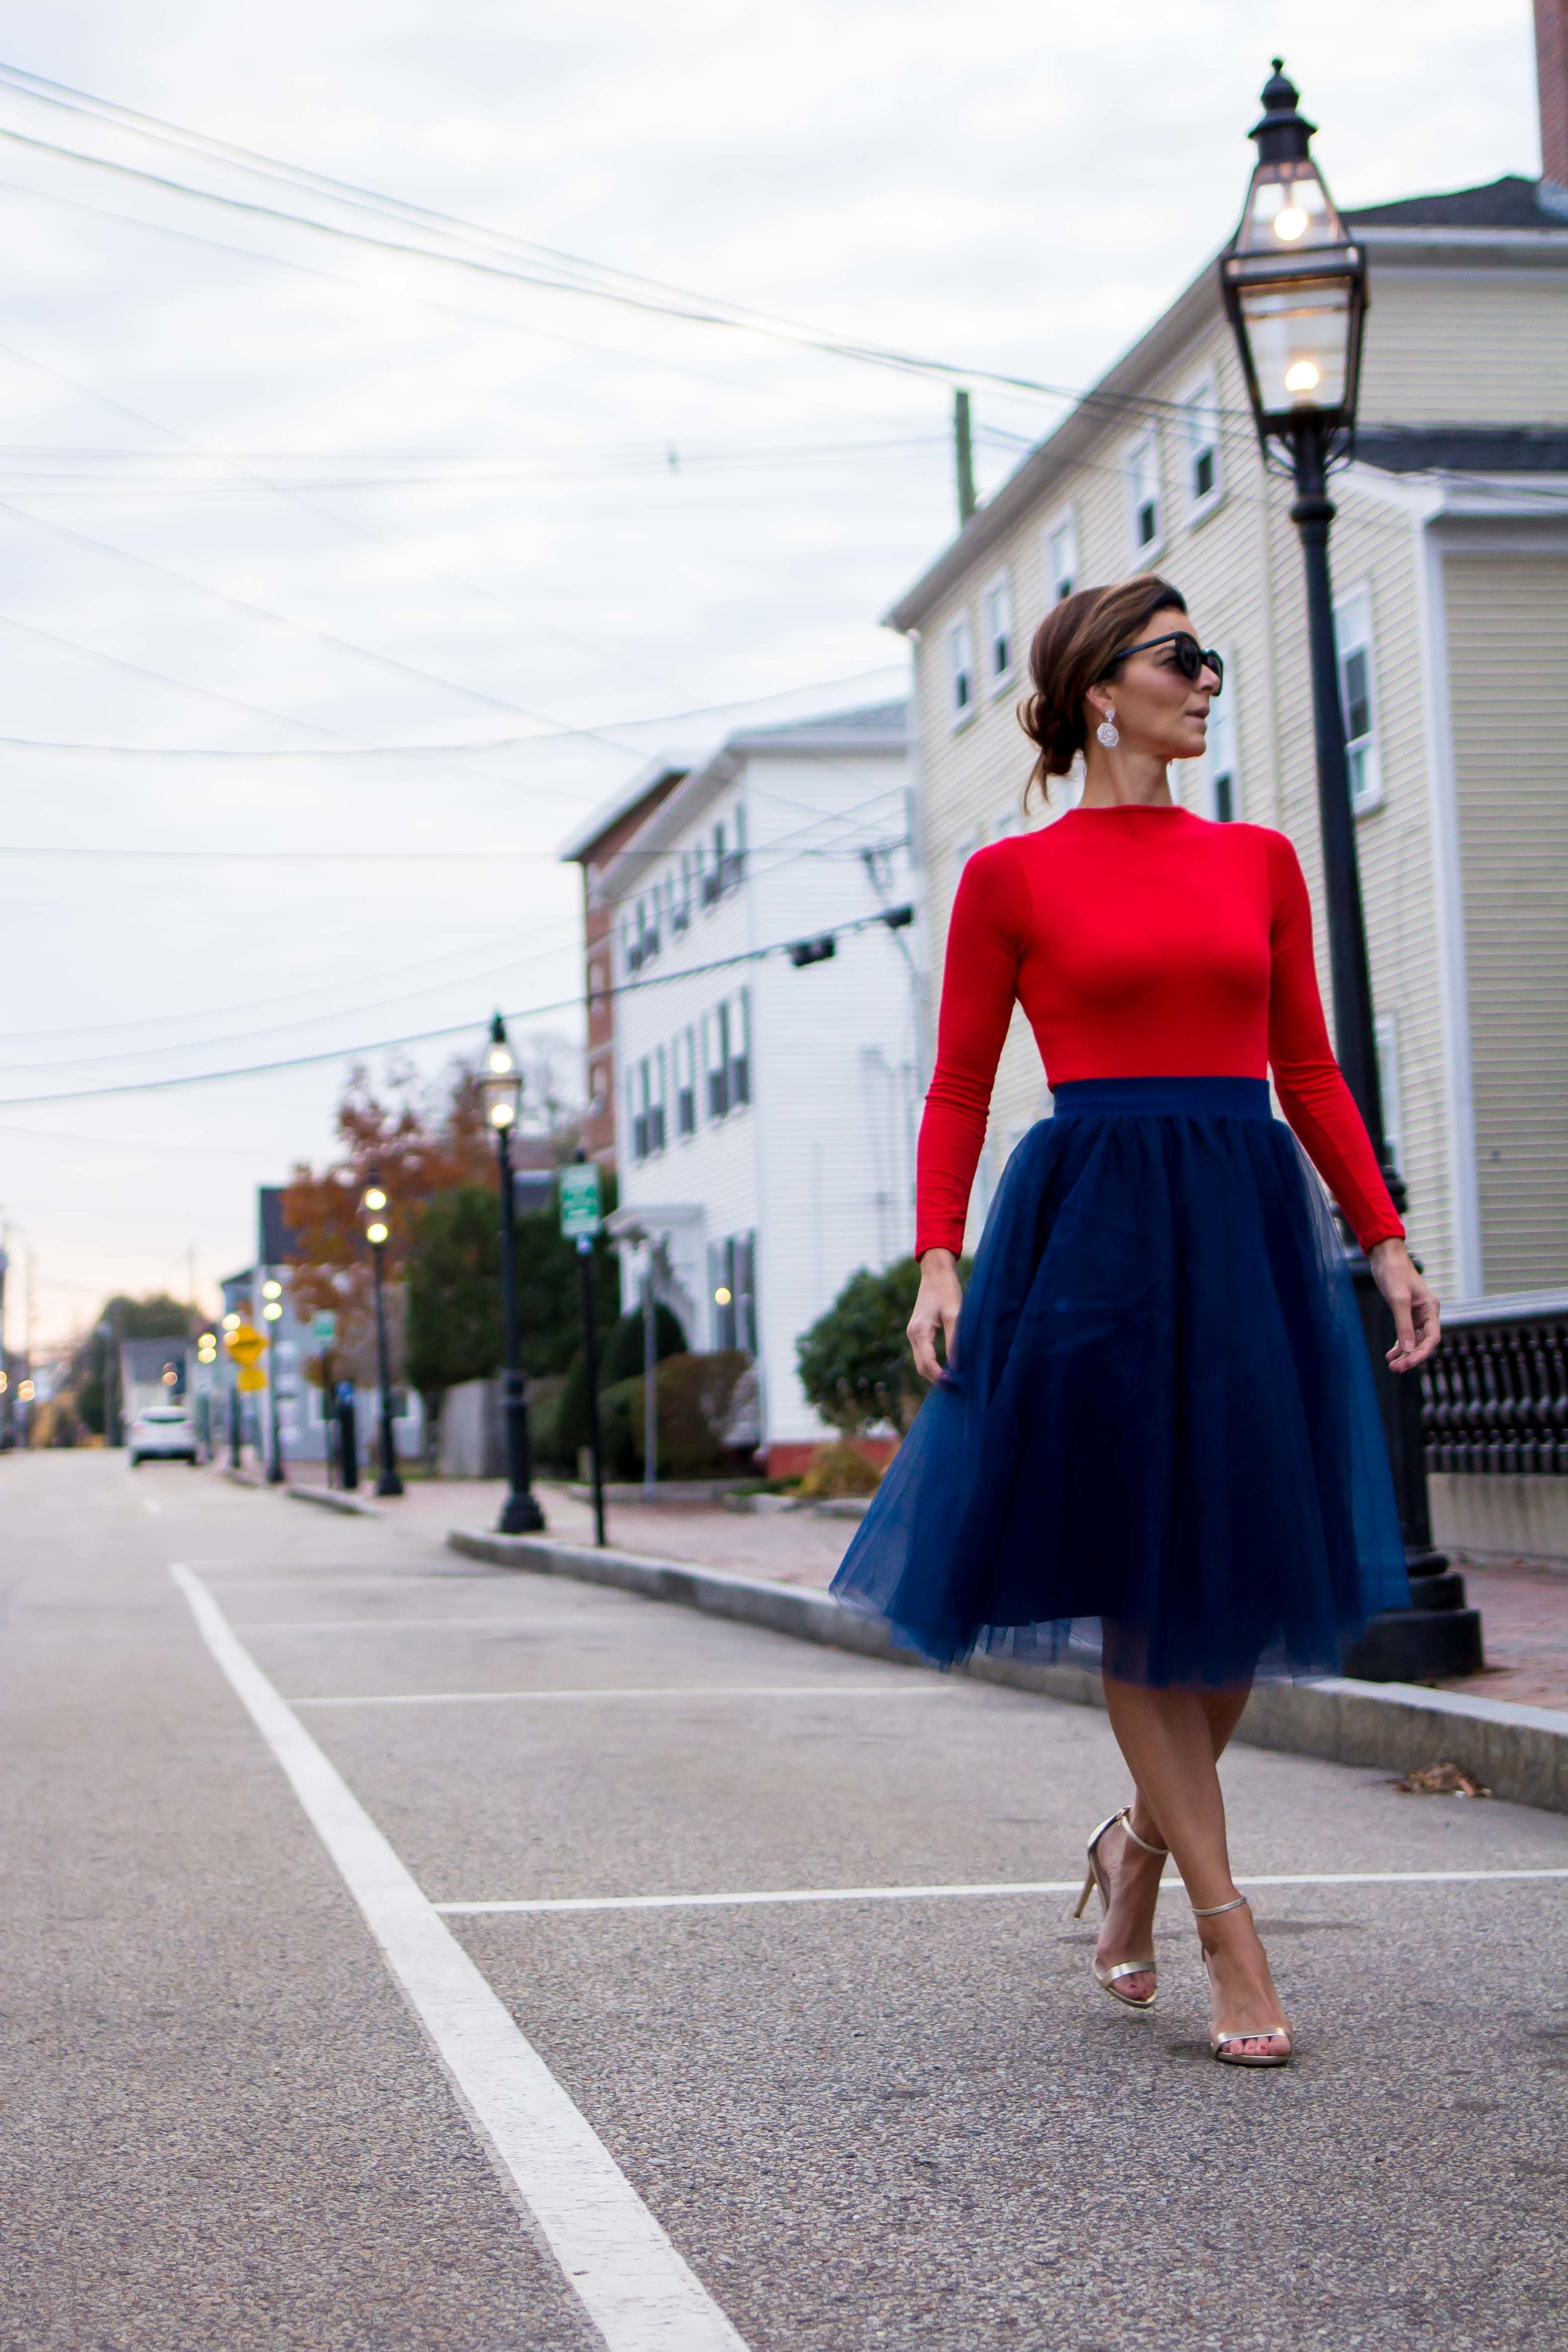 Formal Outfits – Holiday Outfits – Navy Tulle Skirt Outfits – Tulle Skirt Outfits – Fashion for Women – Holiday Party Outfits - Red Top Outfits - Wedding Outfits –  heartandseam.com  #heartandseam